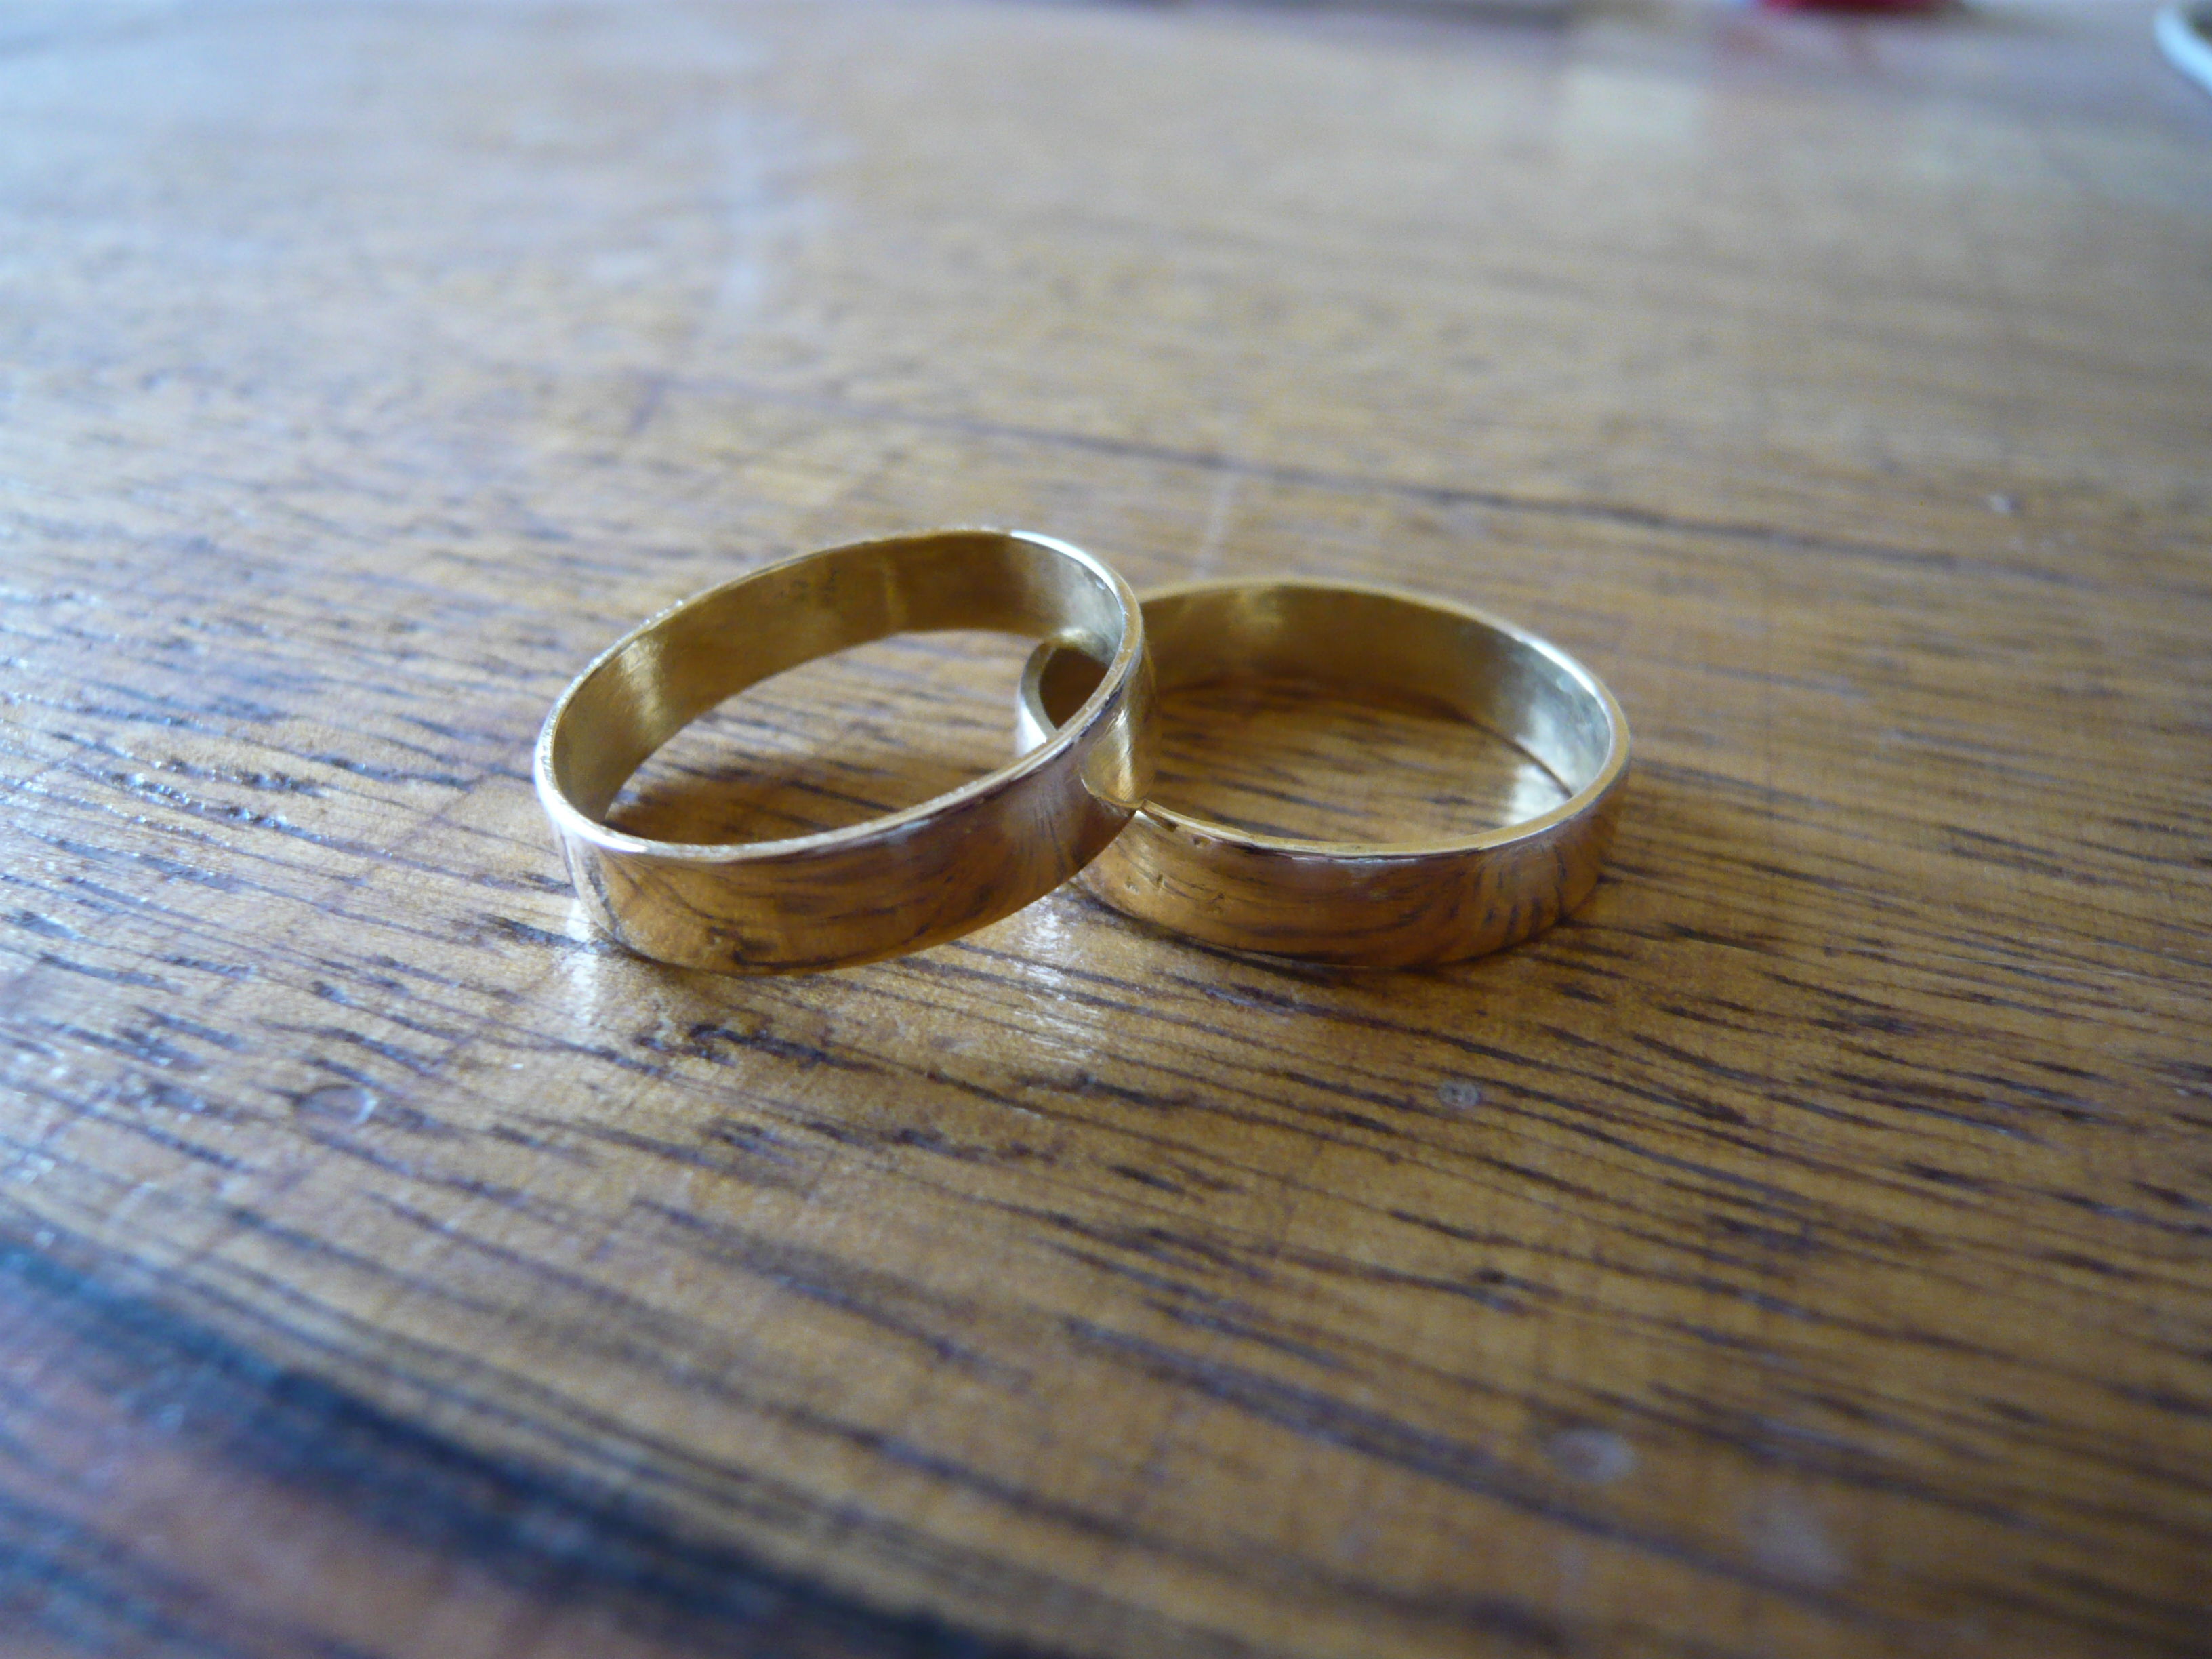 FileTwo golden wedding ringsjpg Wikimedia Commons